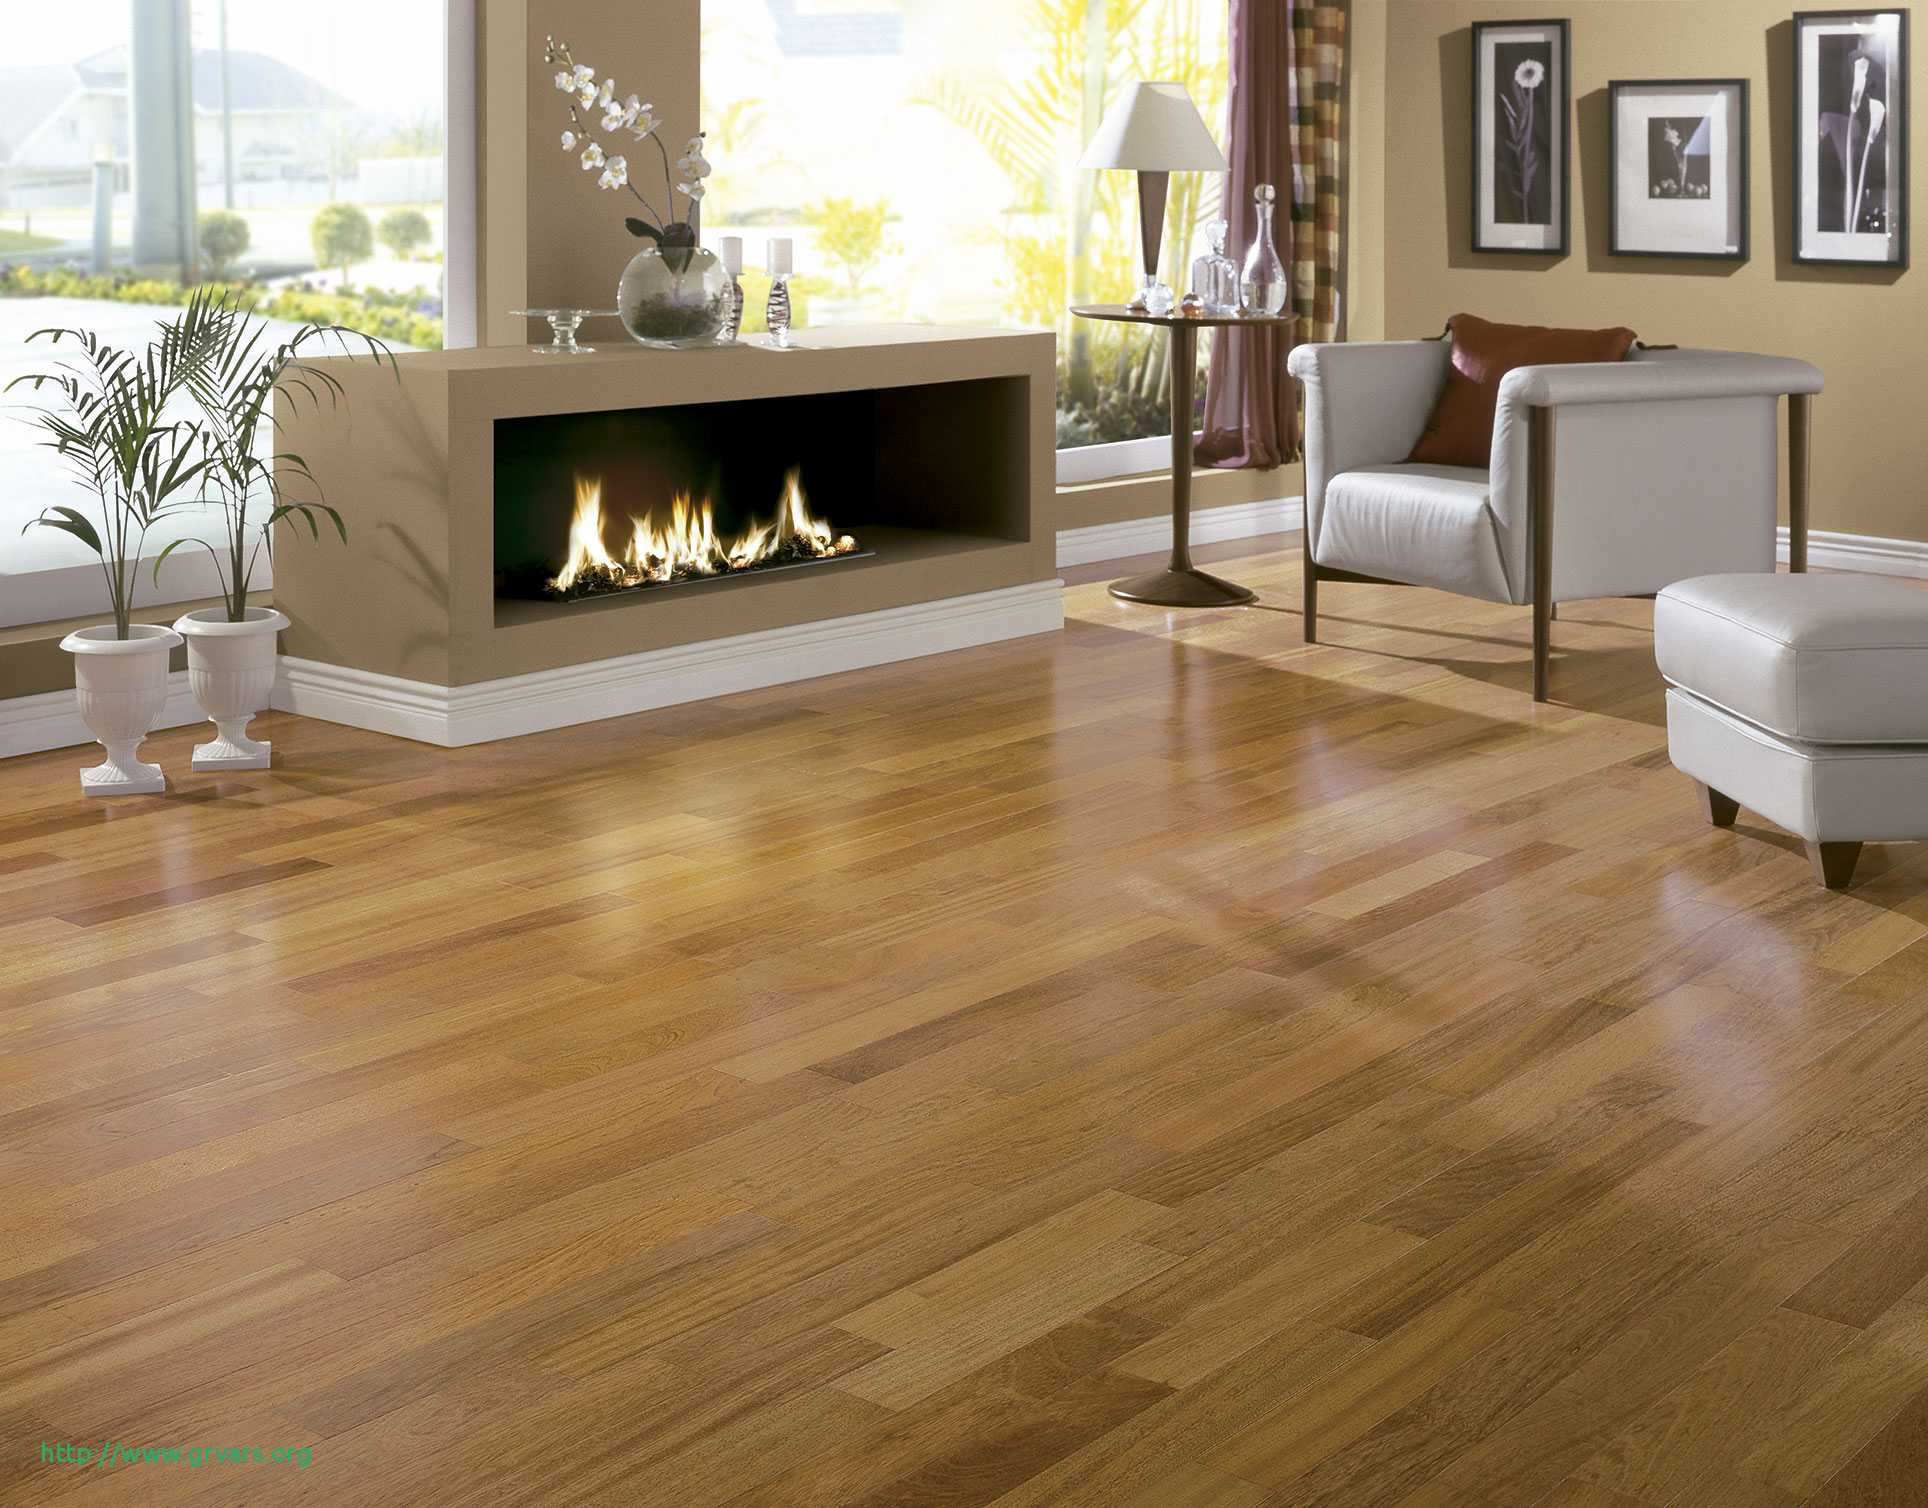 hardwood flooring store burlington of 21 beau cheapest hardwood flooring in toronto ideas blog with 21 photos of the 21 beau cheapest hardwood flooring in toronto